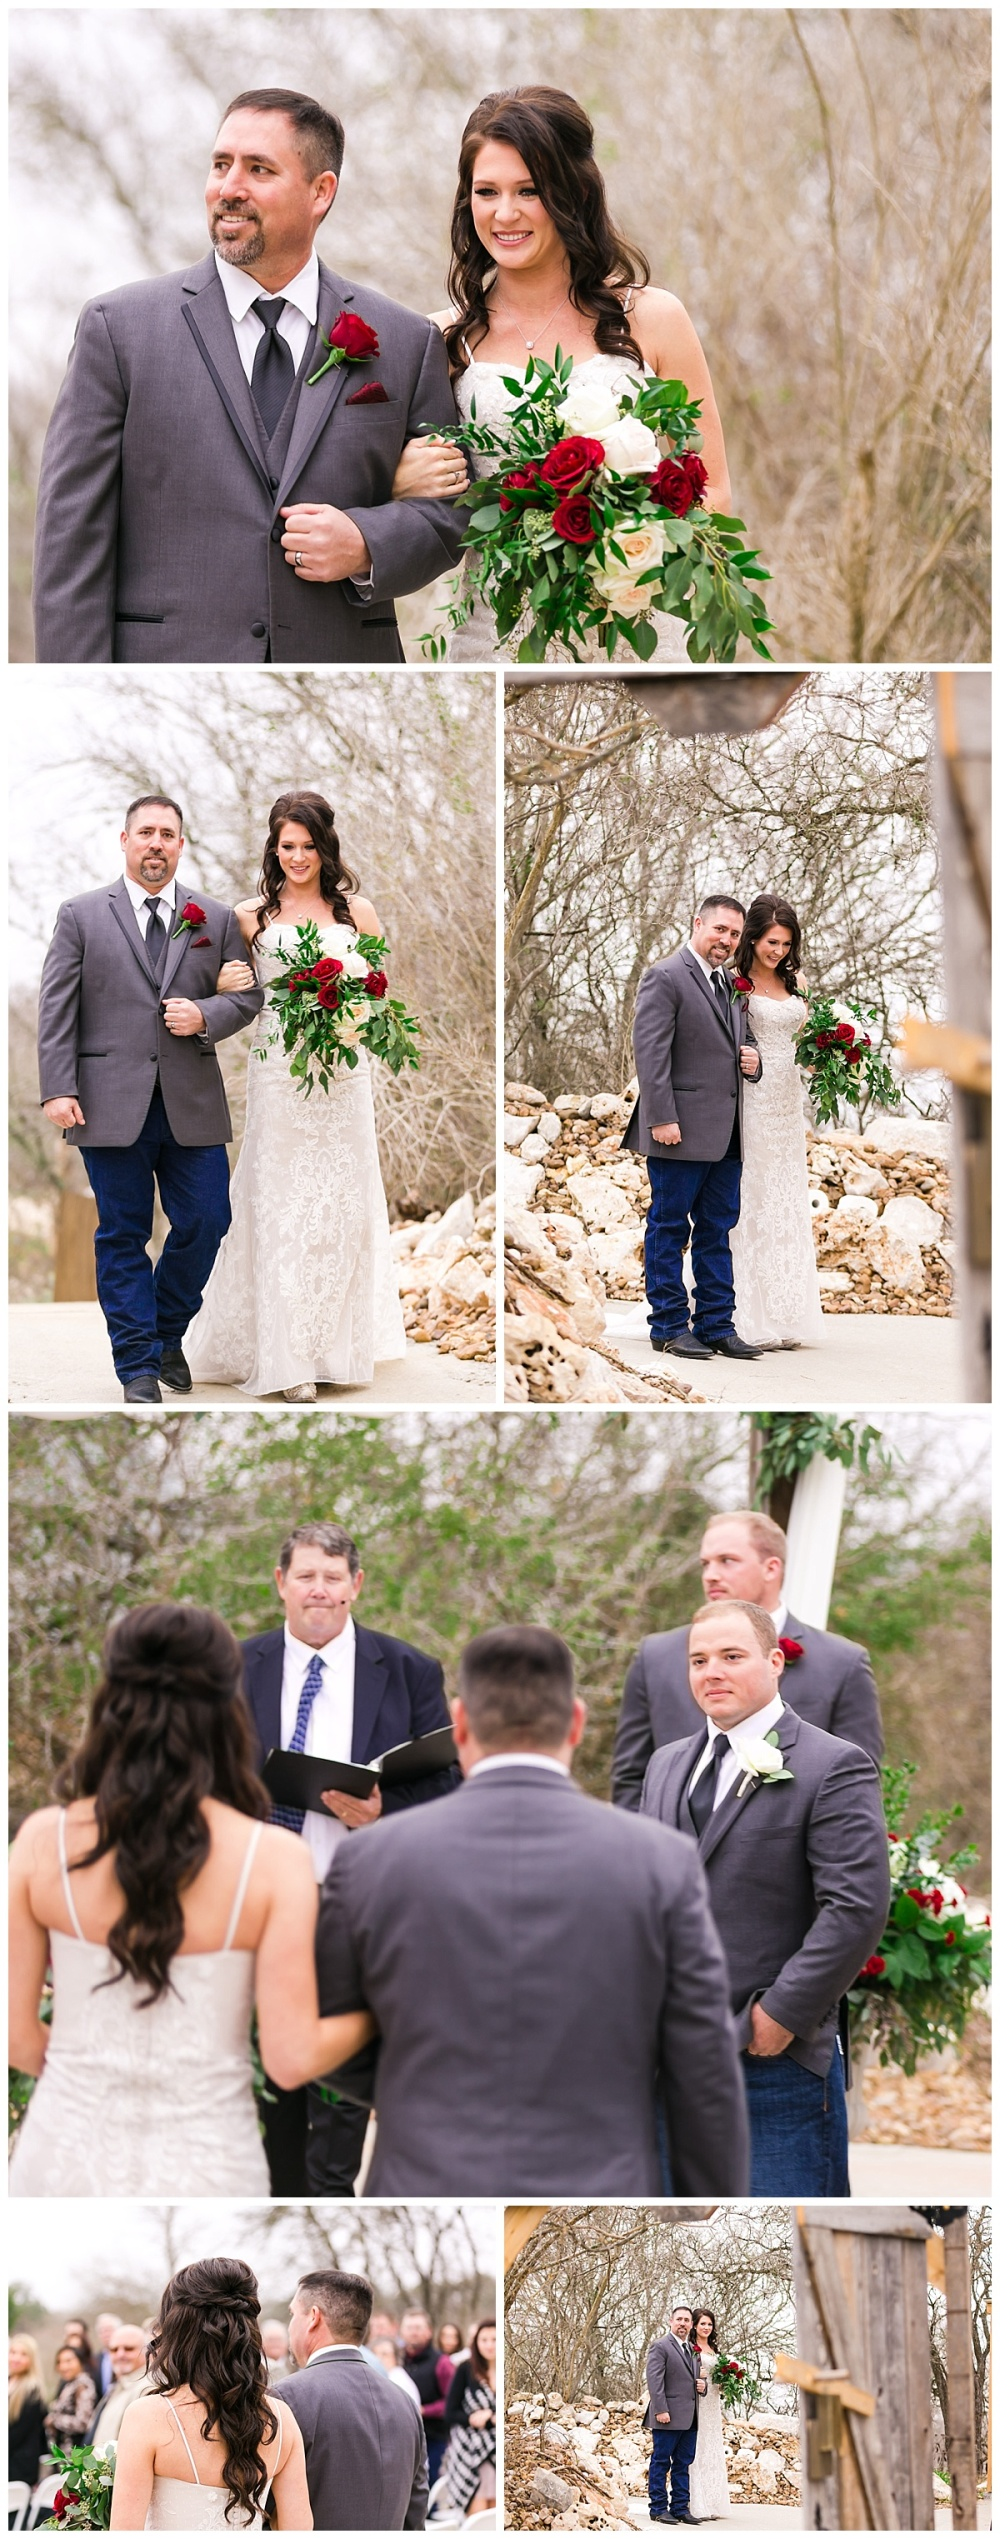 Carly-Barton-Photography-Geronimo-Oaks-Wedding-Venue-Texas-Hill-Country-Ronnie-Sarah_0095.jpg